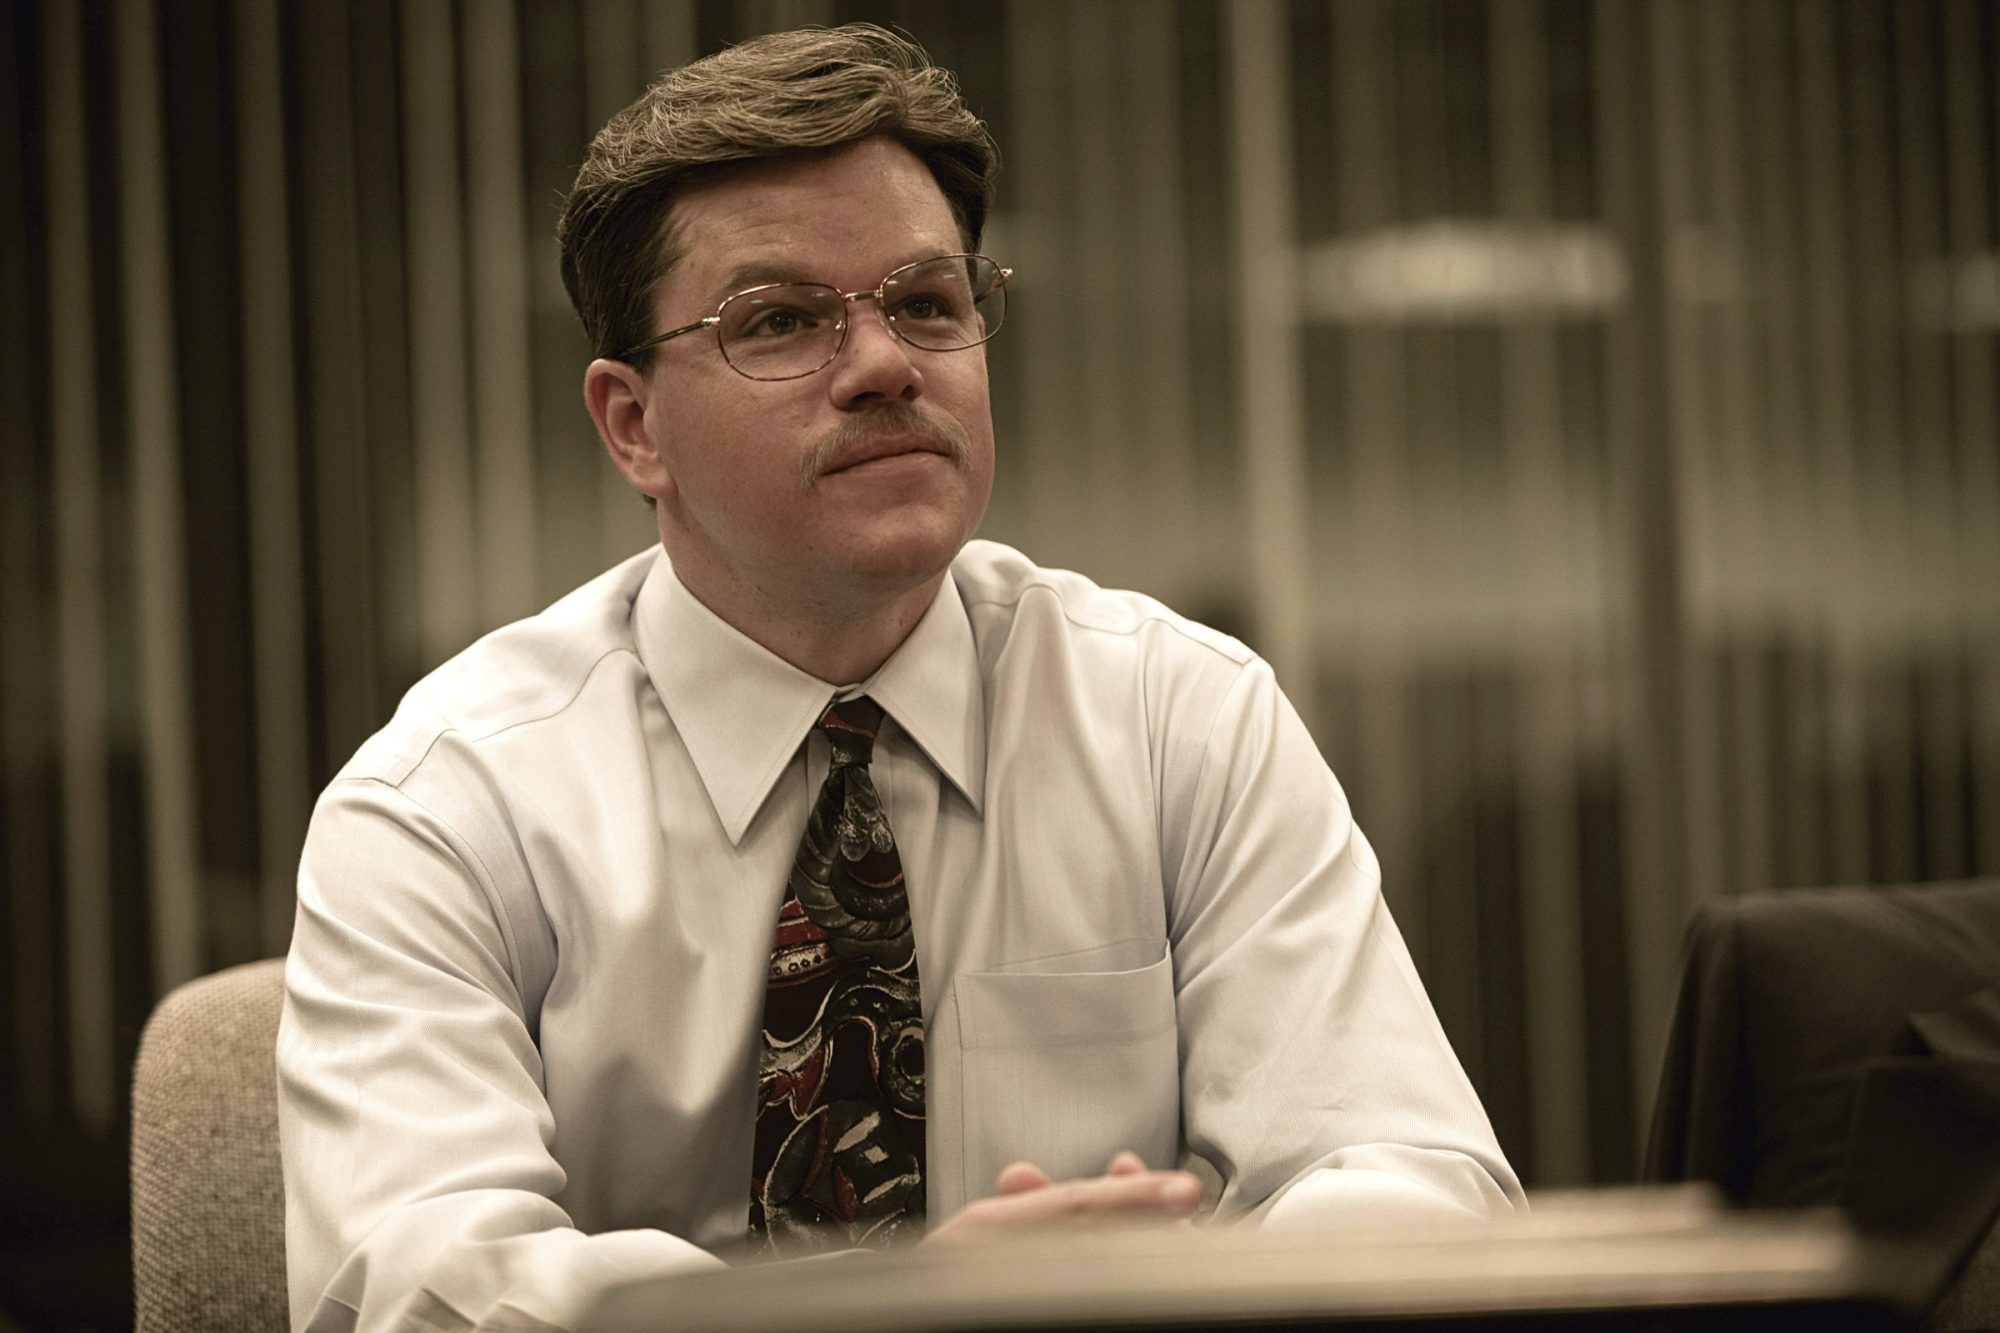 THE INFORMANT!, Matt Damon, 2009. Ph: Claudette Barius/©Warner Bros./courtesy Everett Collection